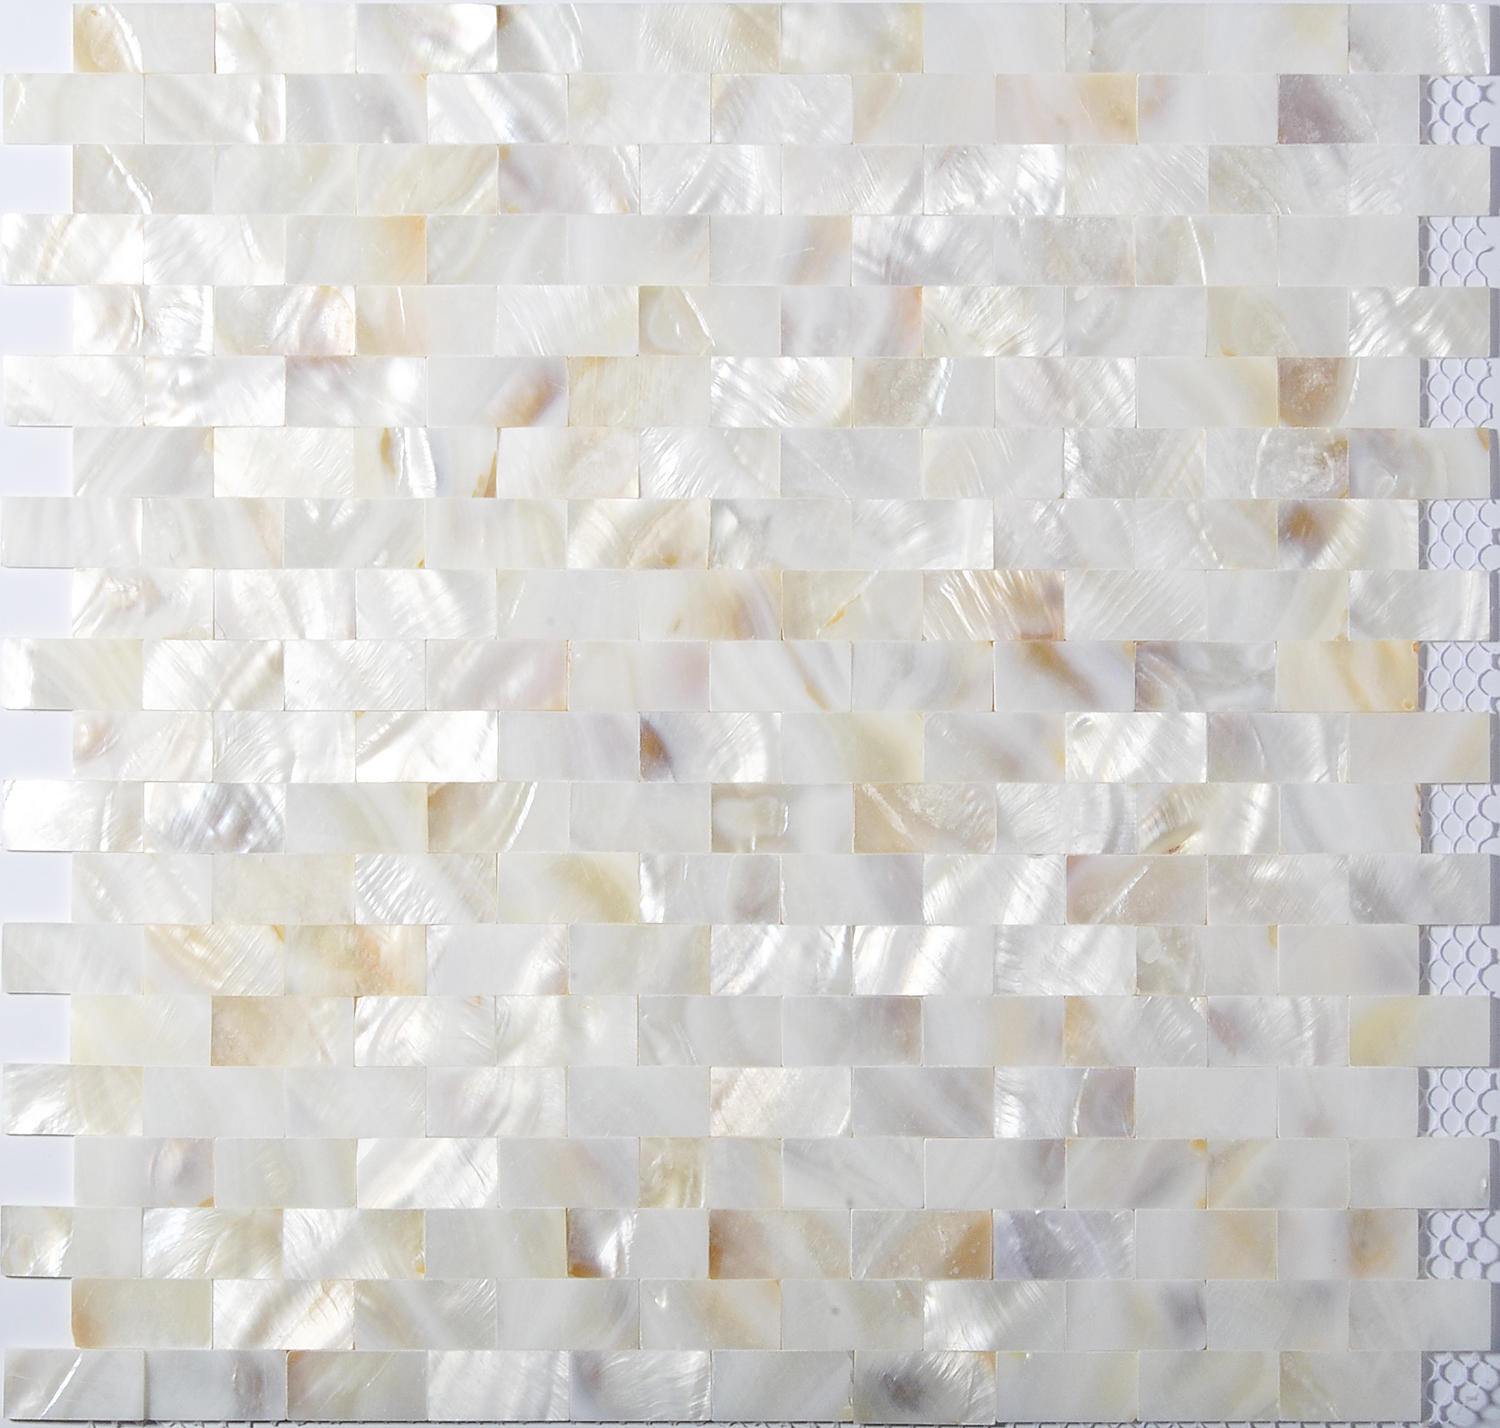 mother of pearl mother of pearl tiles in home decor mother of pearl can be used for walls floor surfaces make sure to check with the manufacturer and sometimes outdoor applications